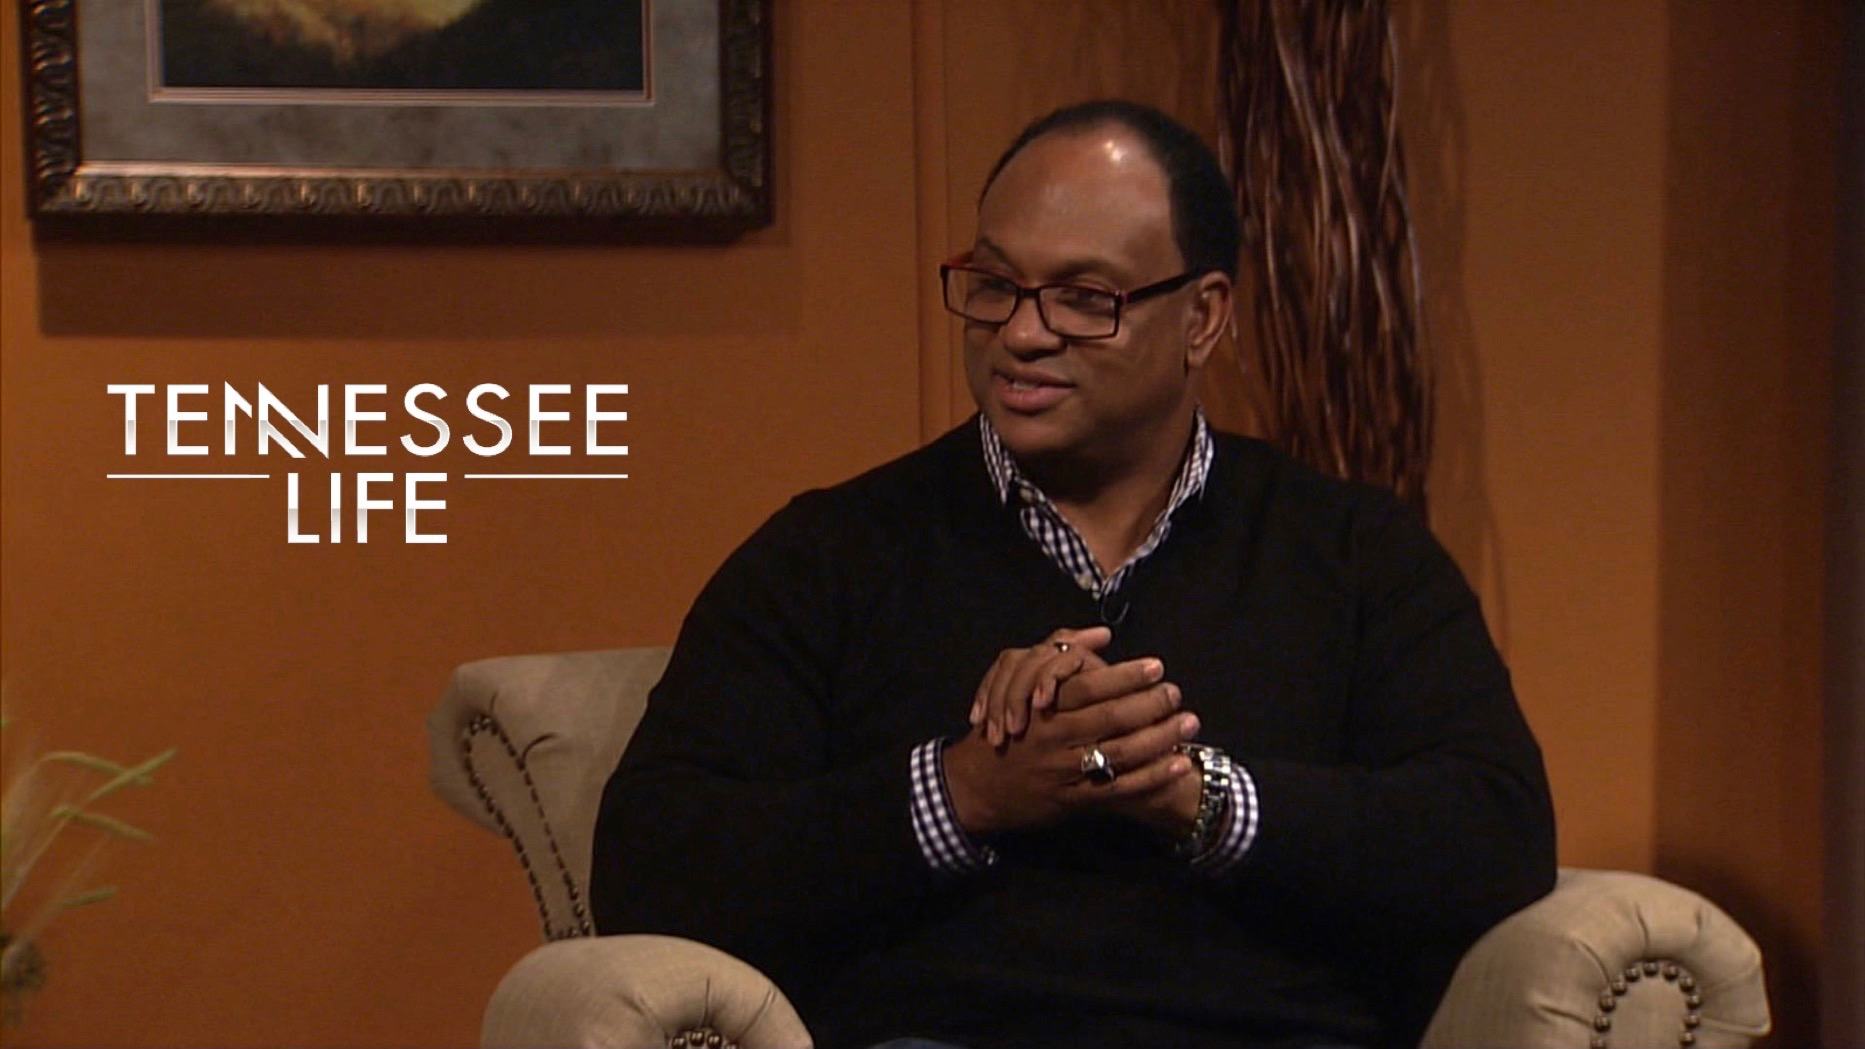 Tennessee Life - Sunday May 29, 5 p.m.